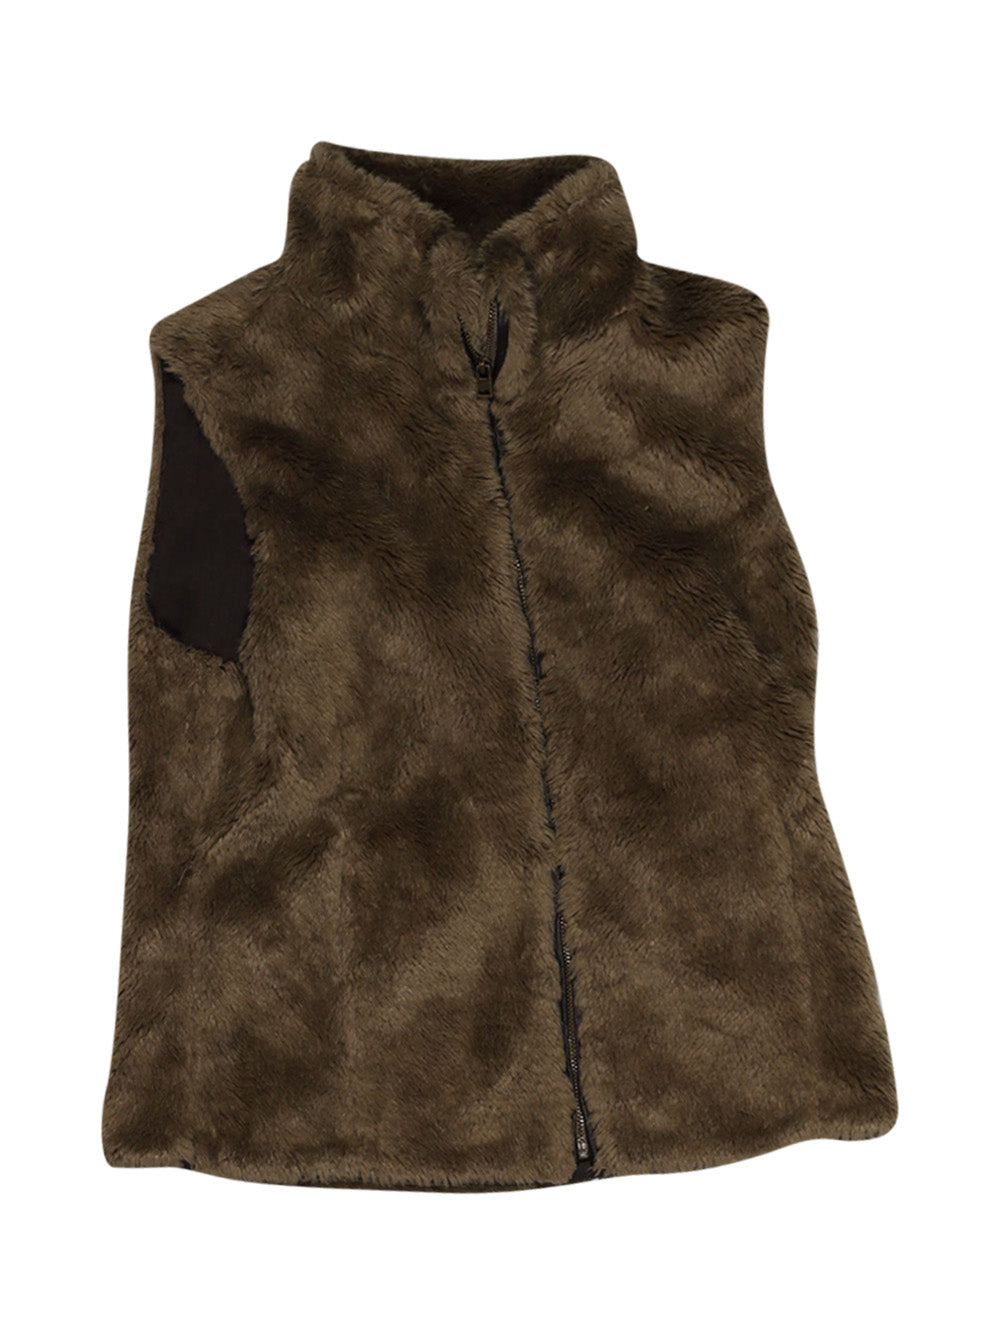 Front photo of Preloved Zara Brown Girl's sleeveless jacket - size 9-10 yrs